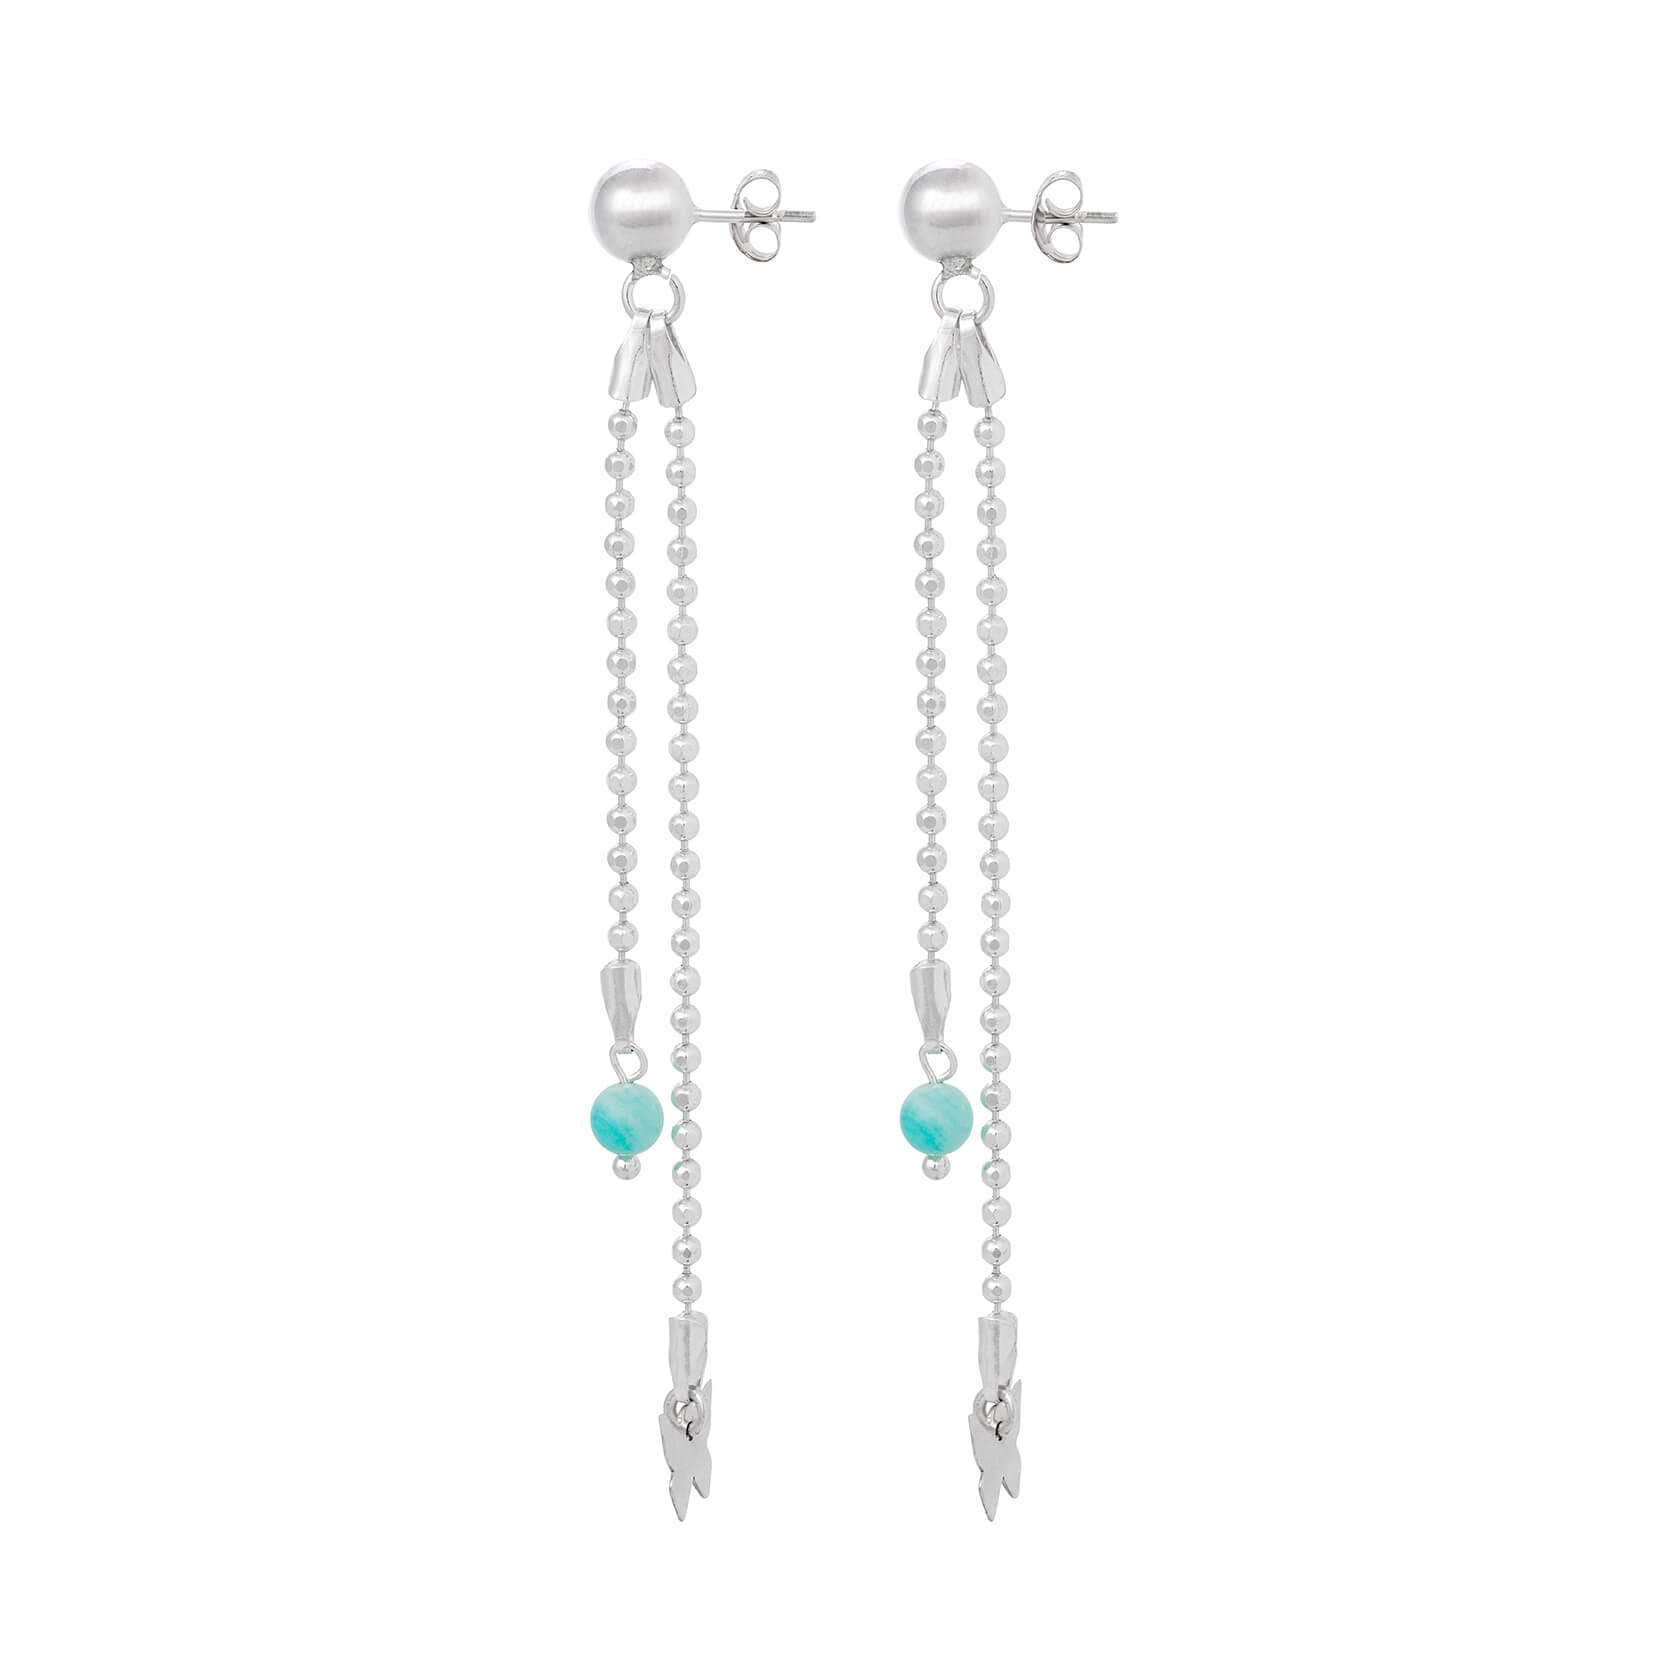 Amazonite long earrings Marybola